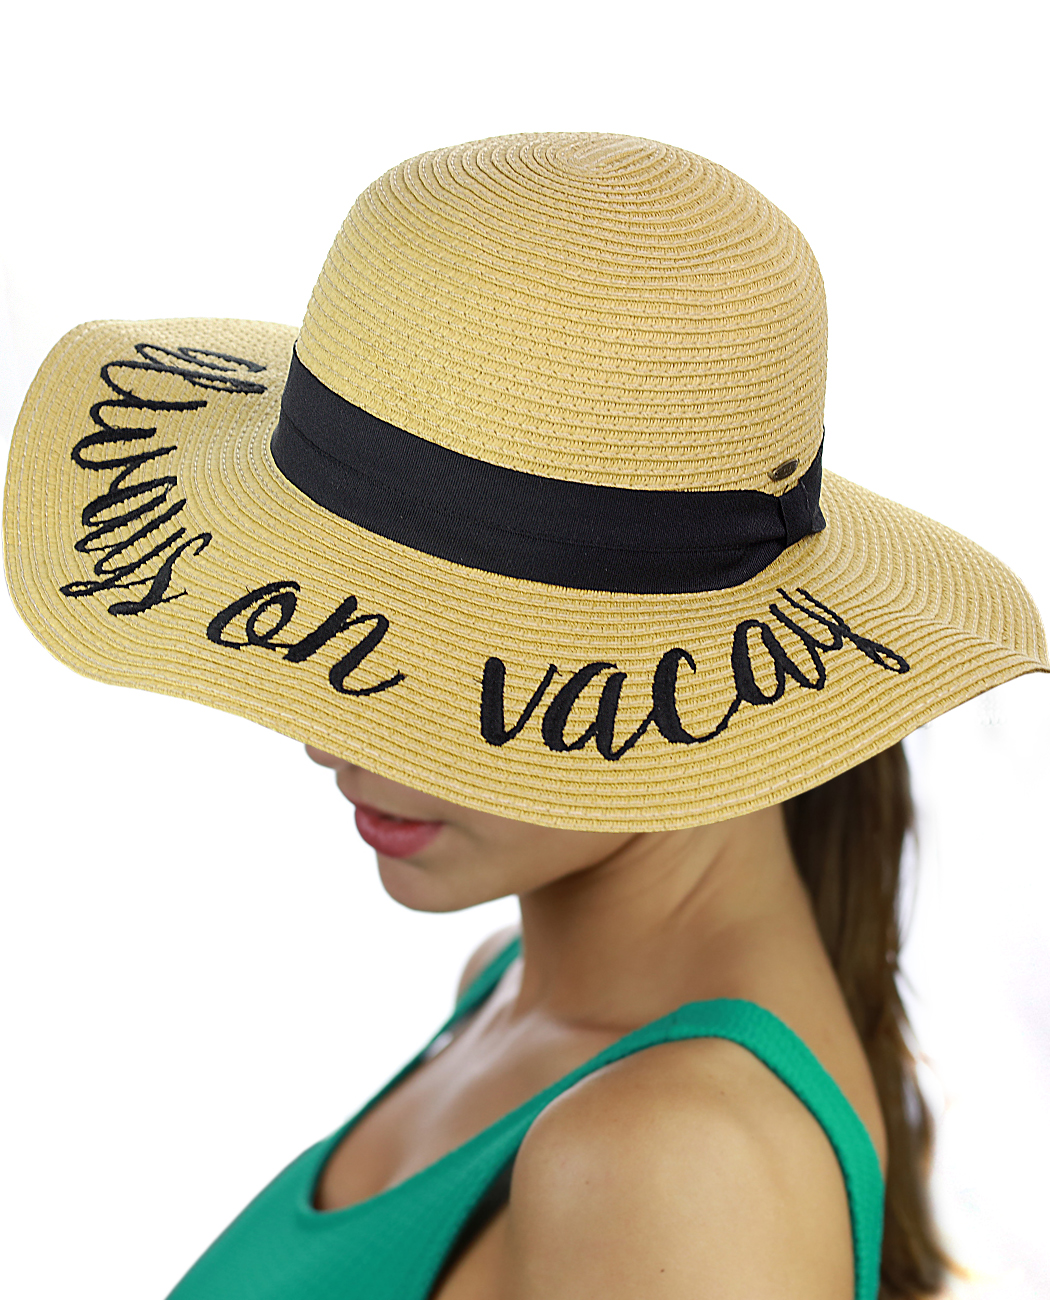 C.C Women's Paper Weaved Beach Time Embroidered Quote Floppy Brim Sun Hat, Always On Vacay